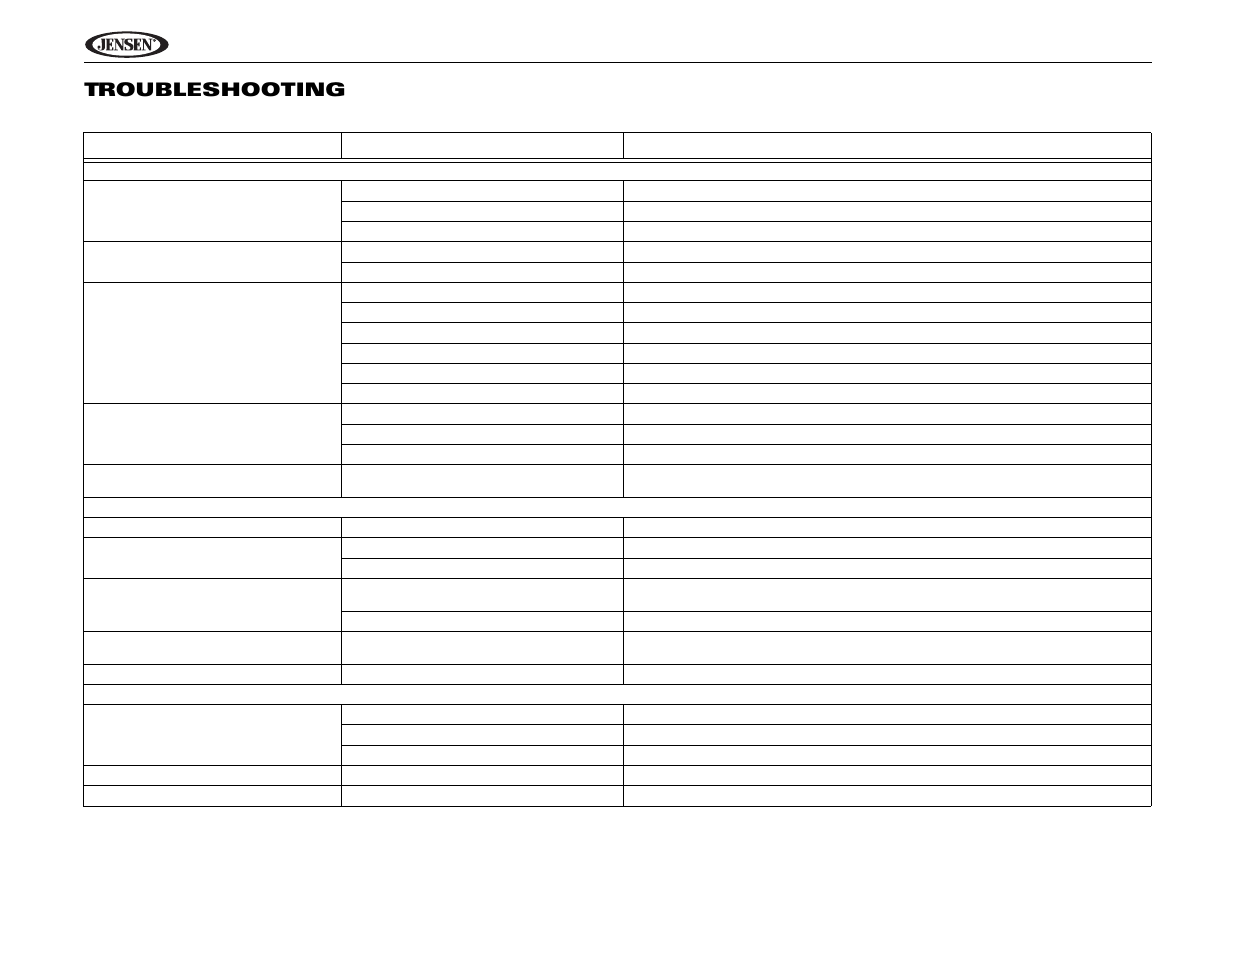 uv10 troubleshooting | jensen phase linear uv10 user manual | page 28 / 90  manuals directory